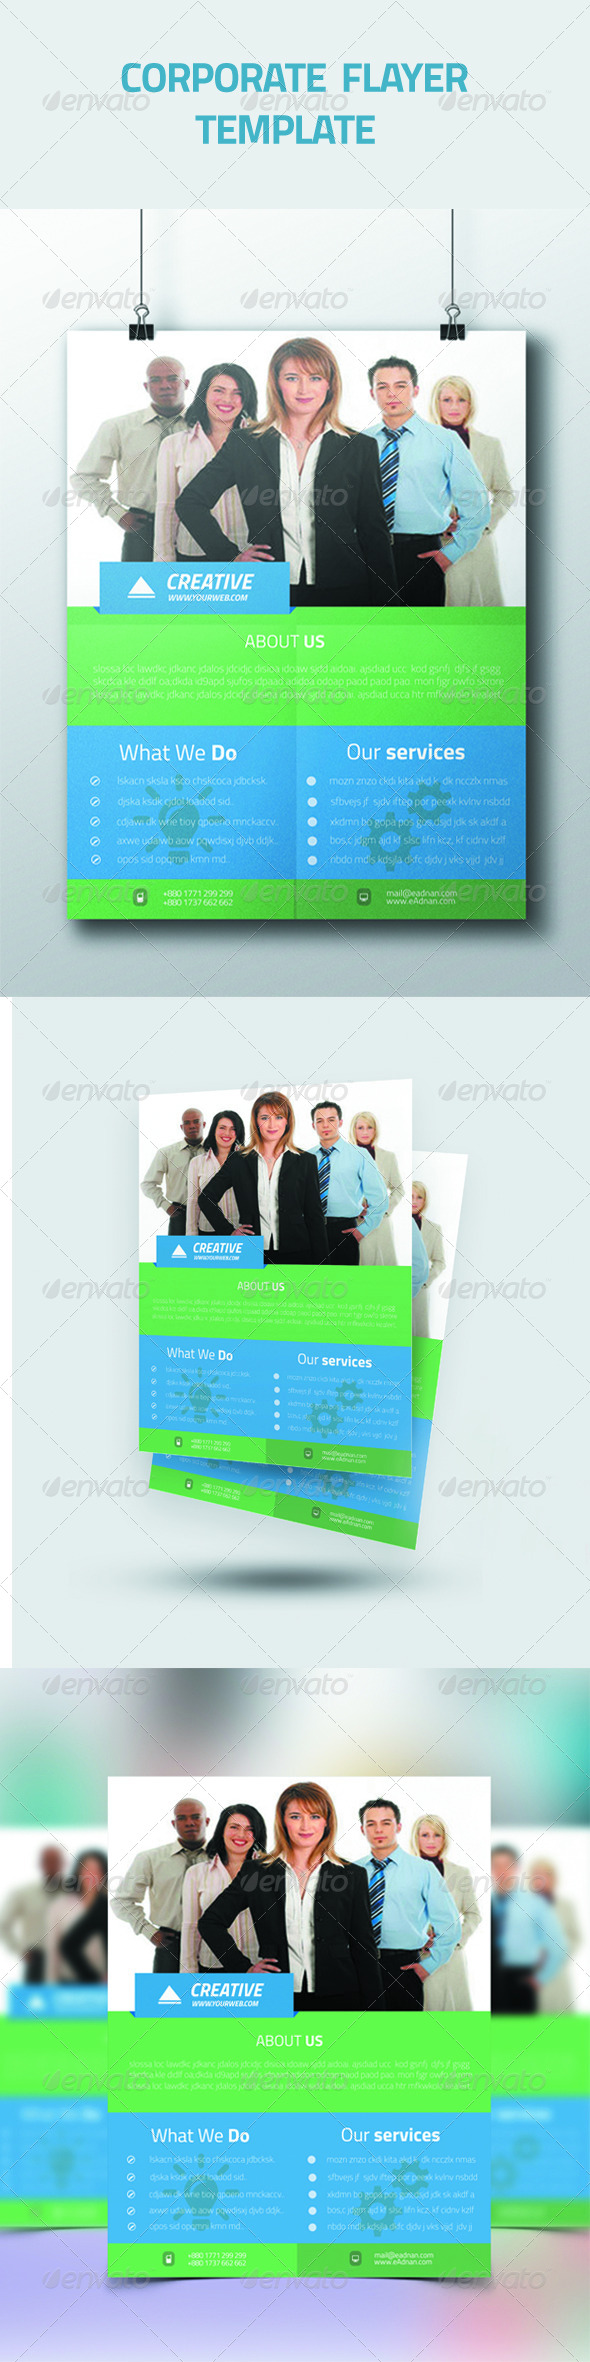 GraphicRiver Corporate Flayer Template 7066981